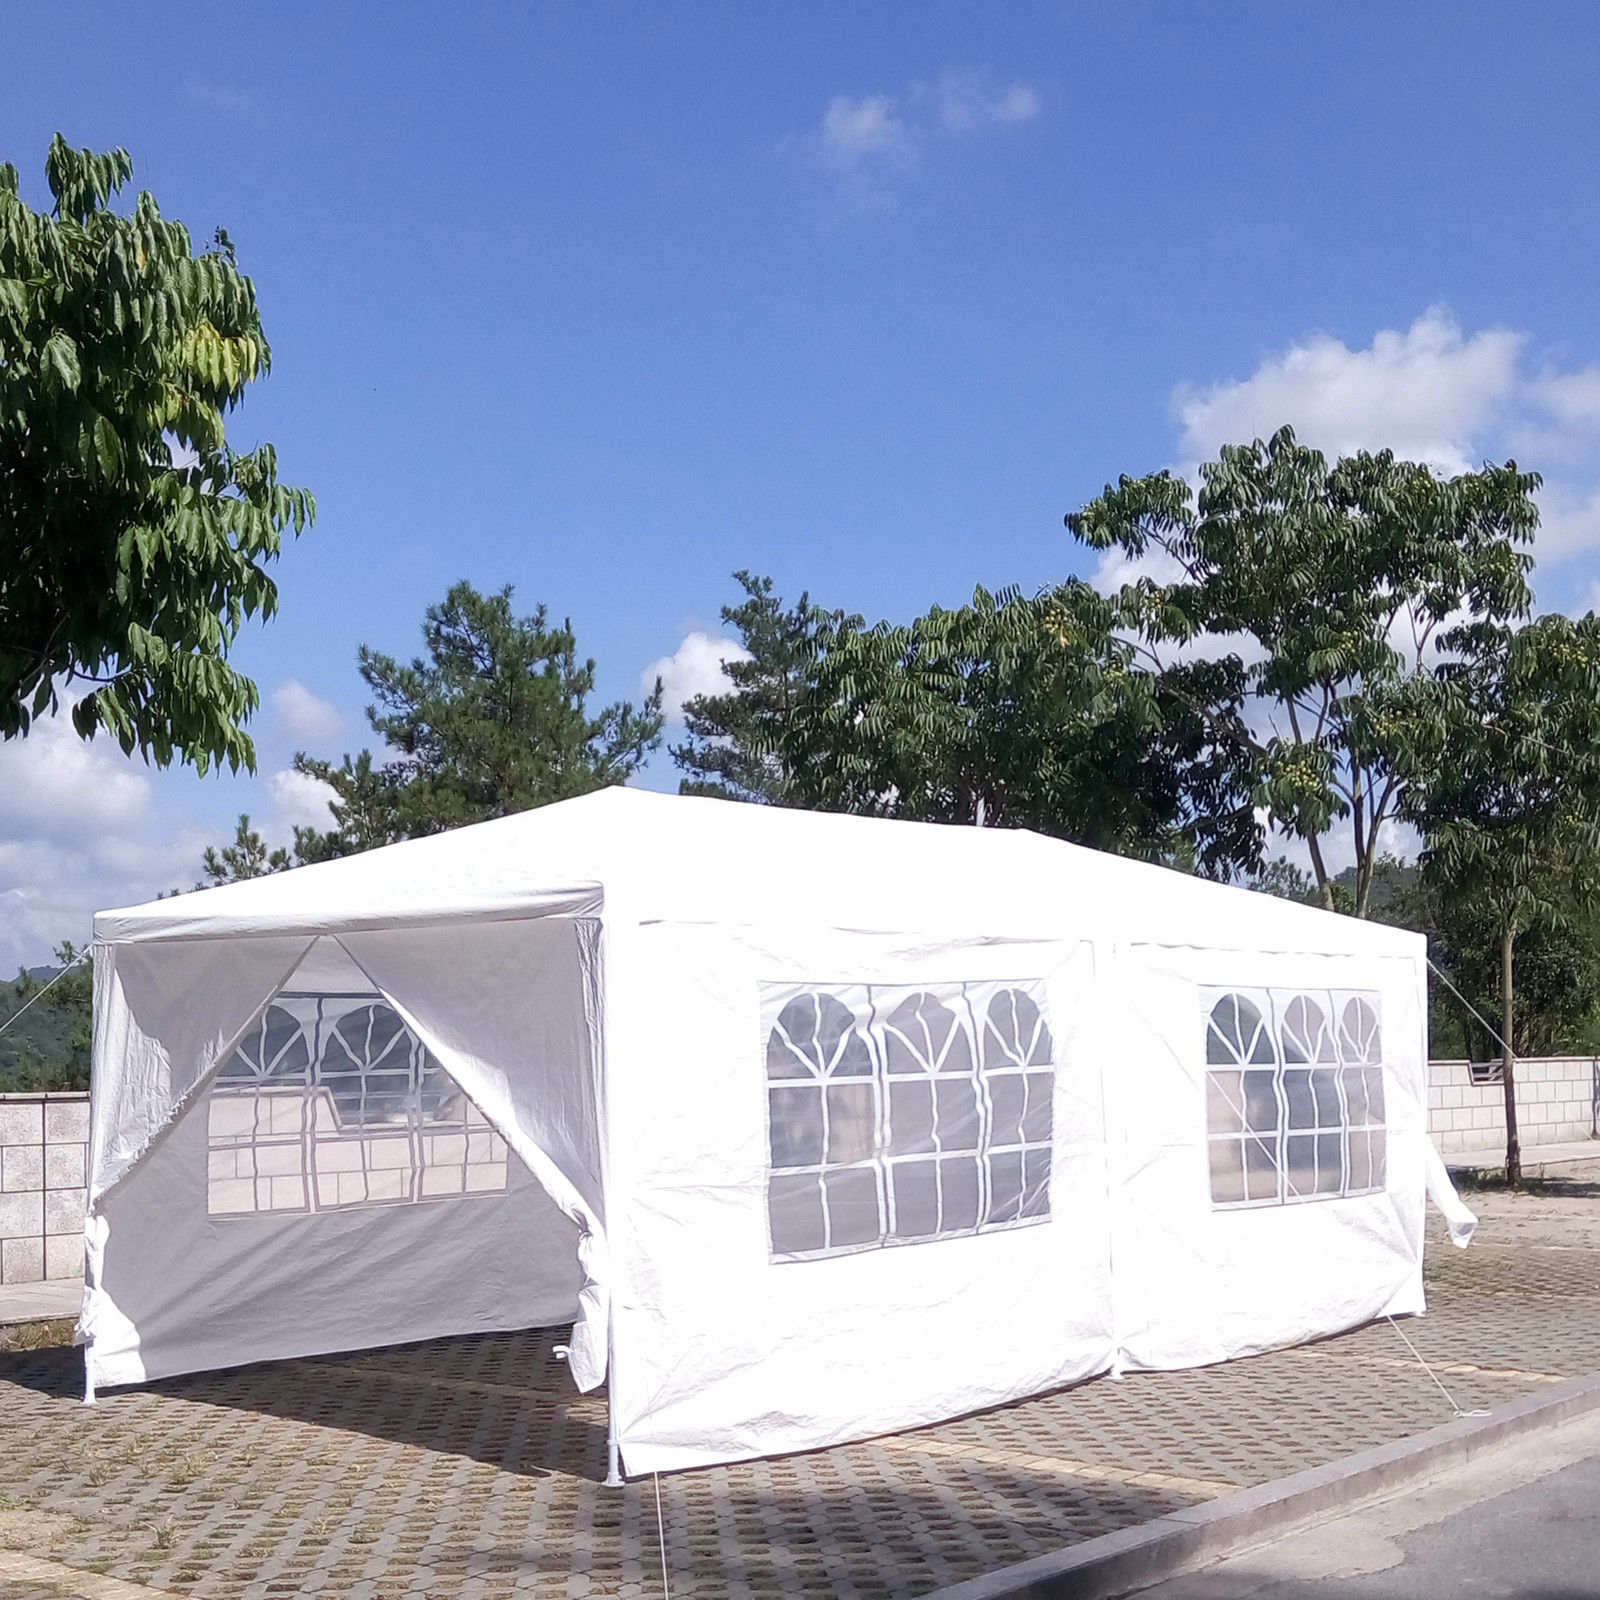 Ktaxon Outdoor 10u0027x20u0027Canopy Party Wedding Tent Heavy Duty Gazebo Pavilion Cater Events & Ktaxon Outdoor 10u0027x20u0027Canopy Party Wedding Tent Heavy Duty Gazebo ...